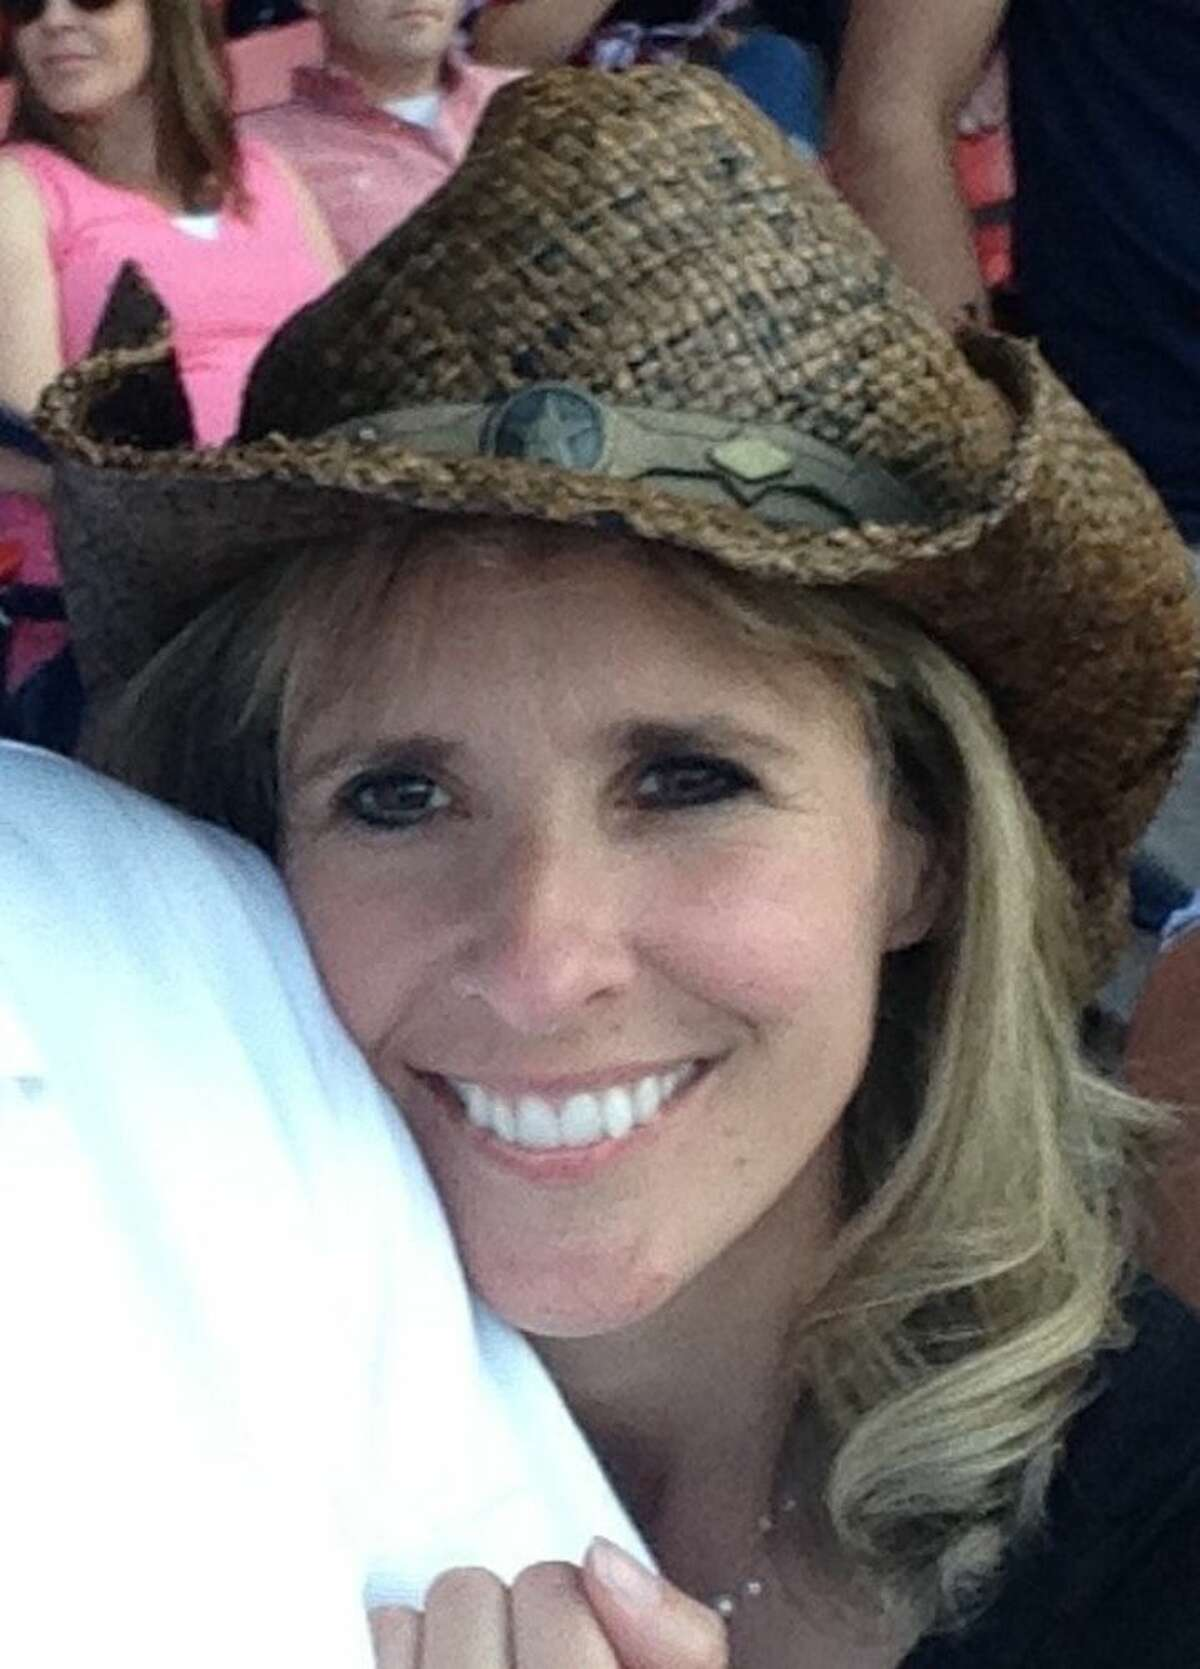 Tonya Carpenter is seen in an undated photo provided by her family. Carpenter, 44, of Paxton, Mass., who was hit by a broken bat at Fenway Park during a game between the Oakland Athletics and the Boston Red Sox on Friday night, remained in serious condition Sunday.